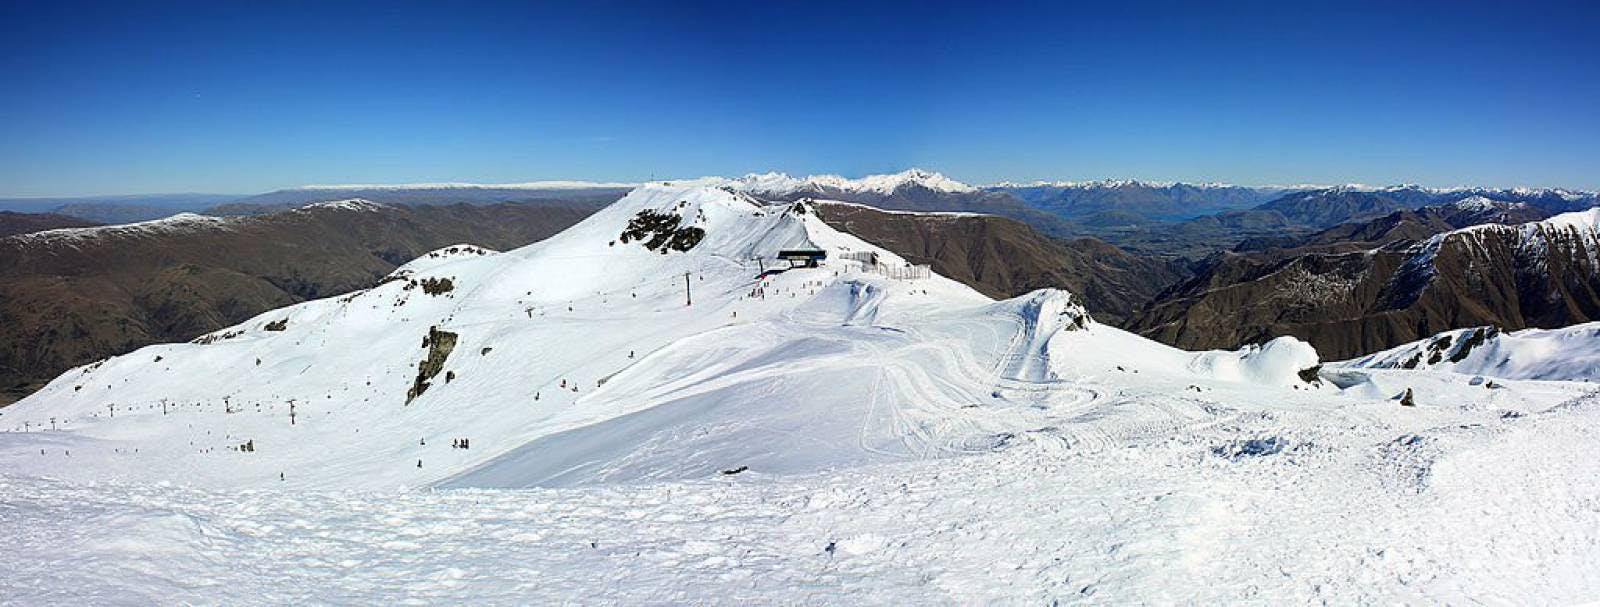 Your guide to Ski Season in Queenstown & Wanaka 2019